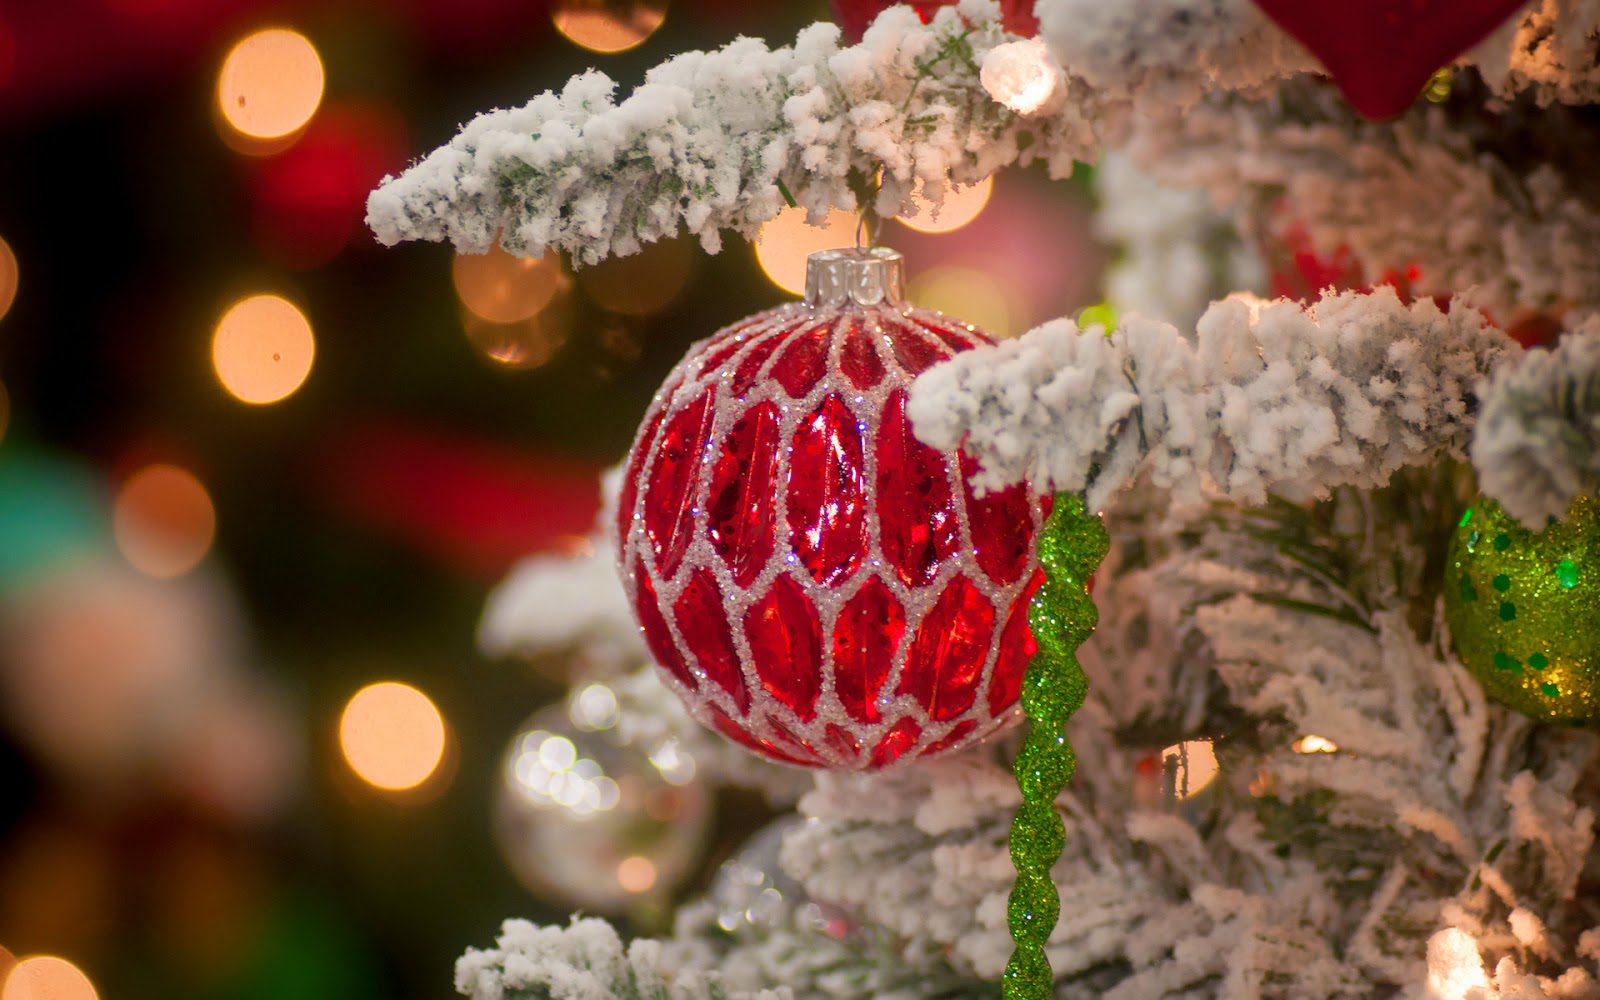 Christmas-red-baubles-with-beautiful-design-decorated-in-xmas-tree-photo-image.jpg